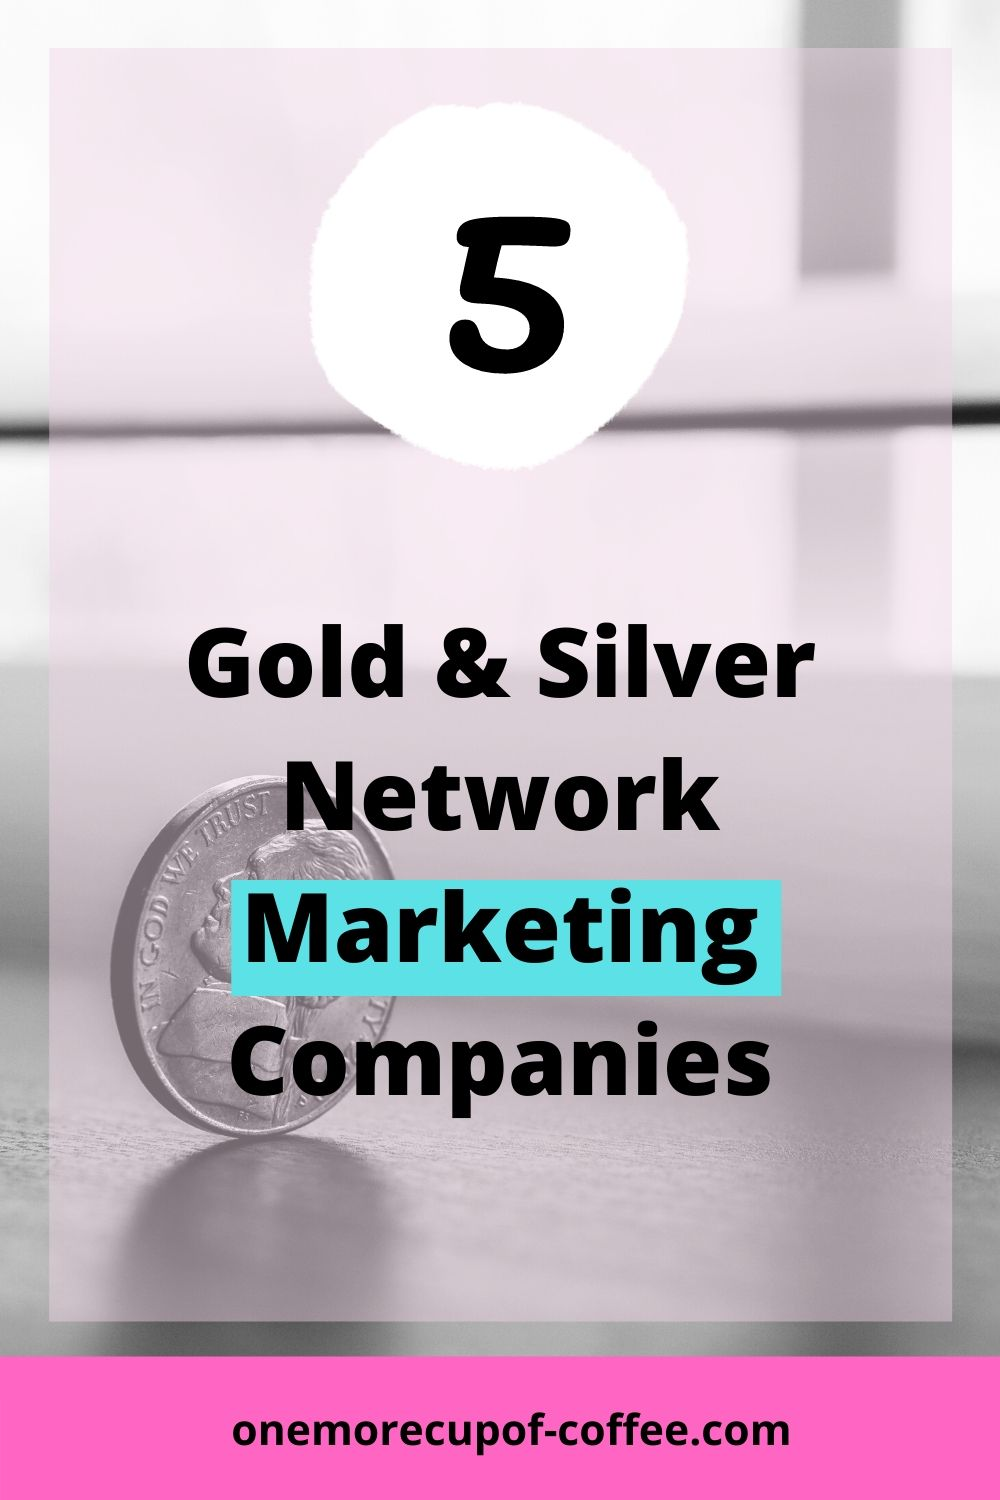 Coin to represent Gold & Silver Network Marketing Companies